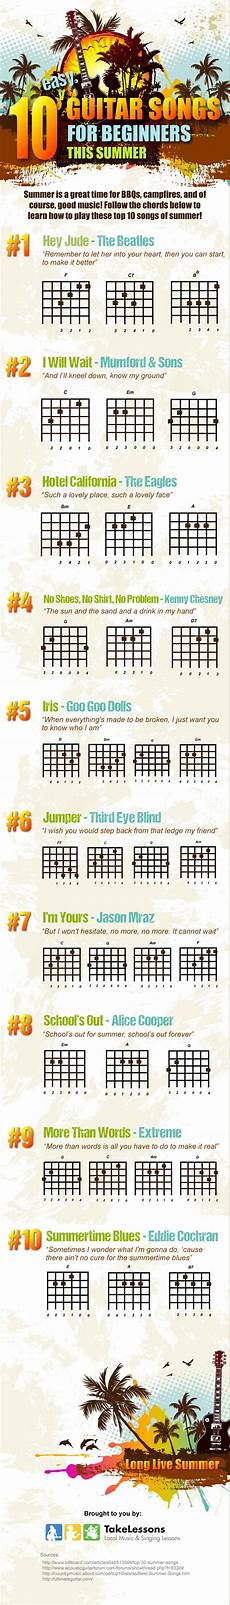 10 easy guitar songs for beginners this summer infographic